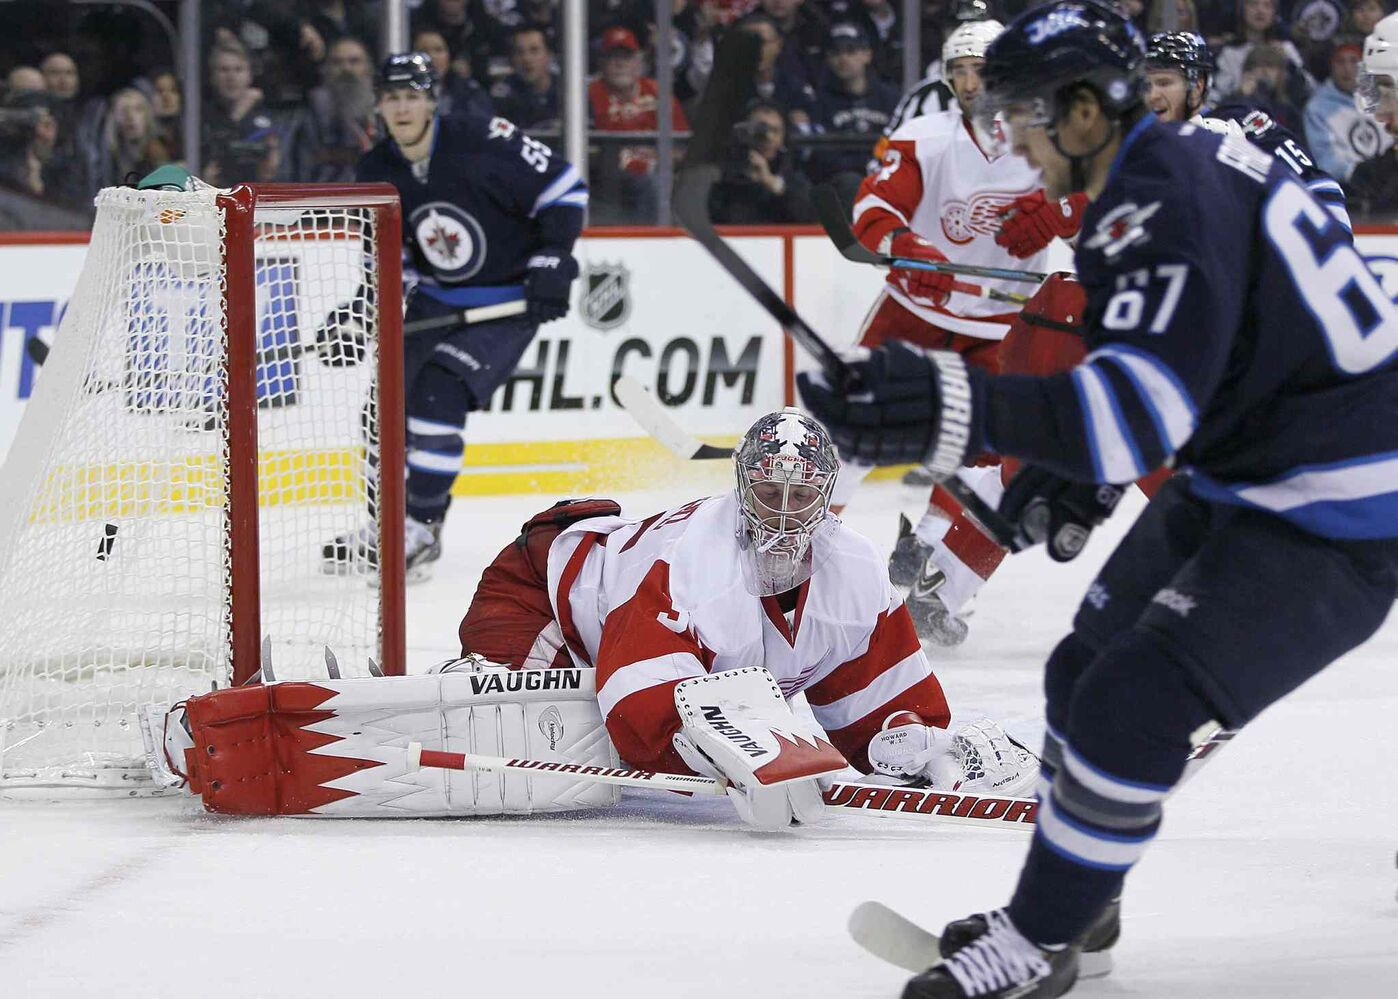 Winnipeg Jets forward Michael Frolik scores on Detroit Red Wings goaltender Jimmy Howard in the second period. (JOHN WOODS / THE CANADIAN PRESS)